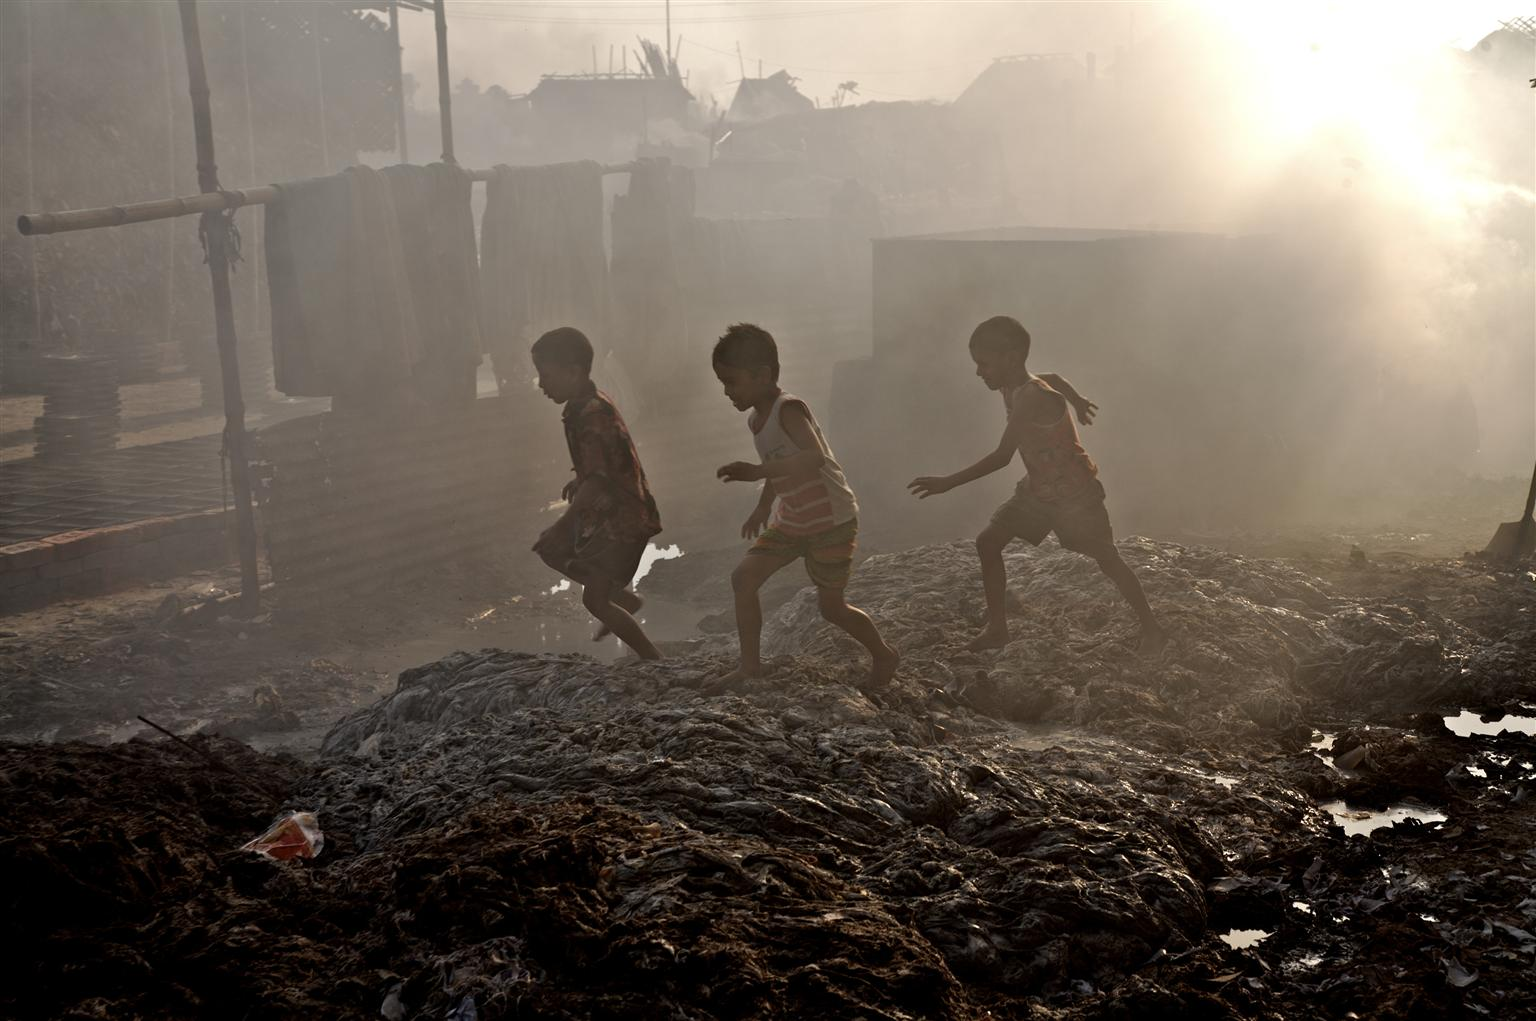 Child Poverty - 7 facts about poverty - Children play outside their home that has been turned into a large dumpsite by waste from leather industries in Bangladesh.